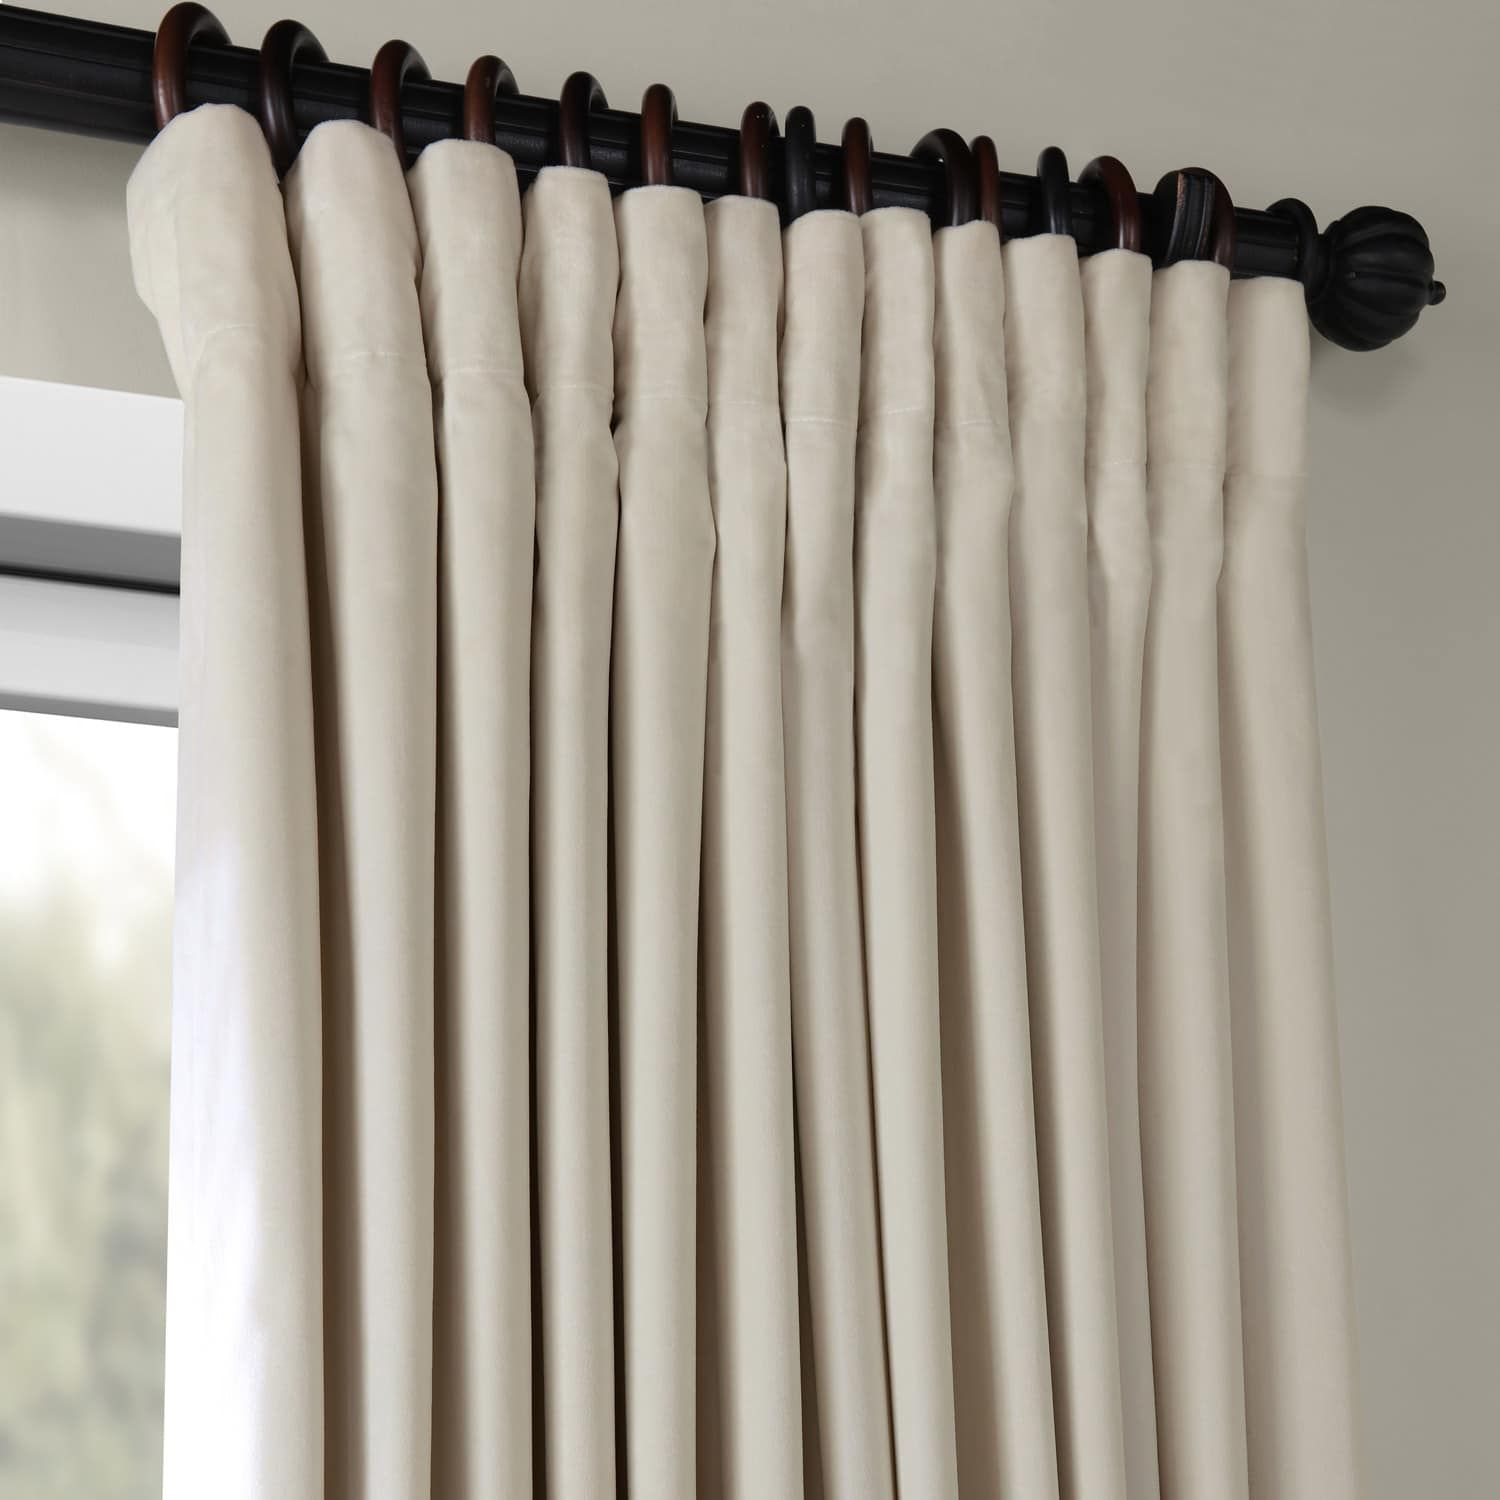 Signature Ivory Extra Wide Velvet Blackout Pole Pocket With Signature Ivory Velvet Blackout Single Curtain Panels (View 28 of 34)